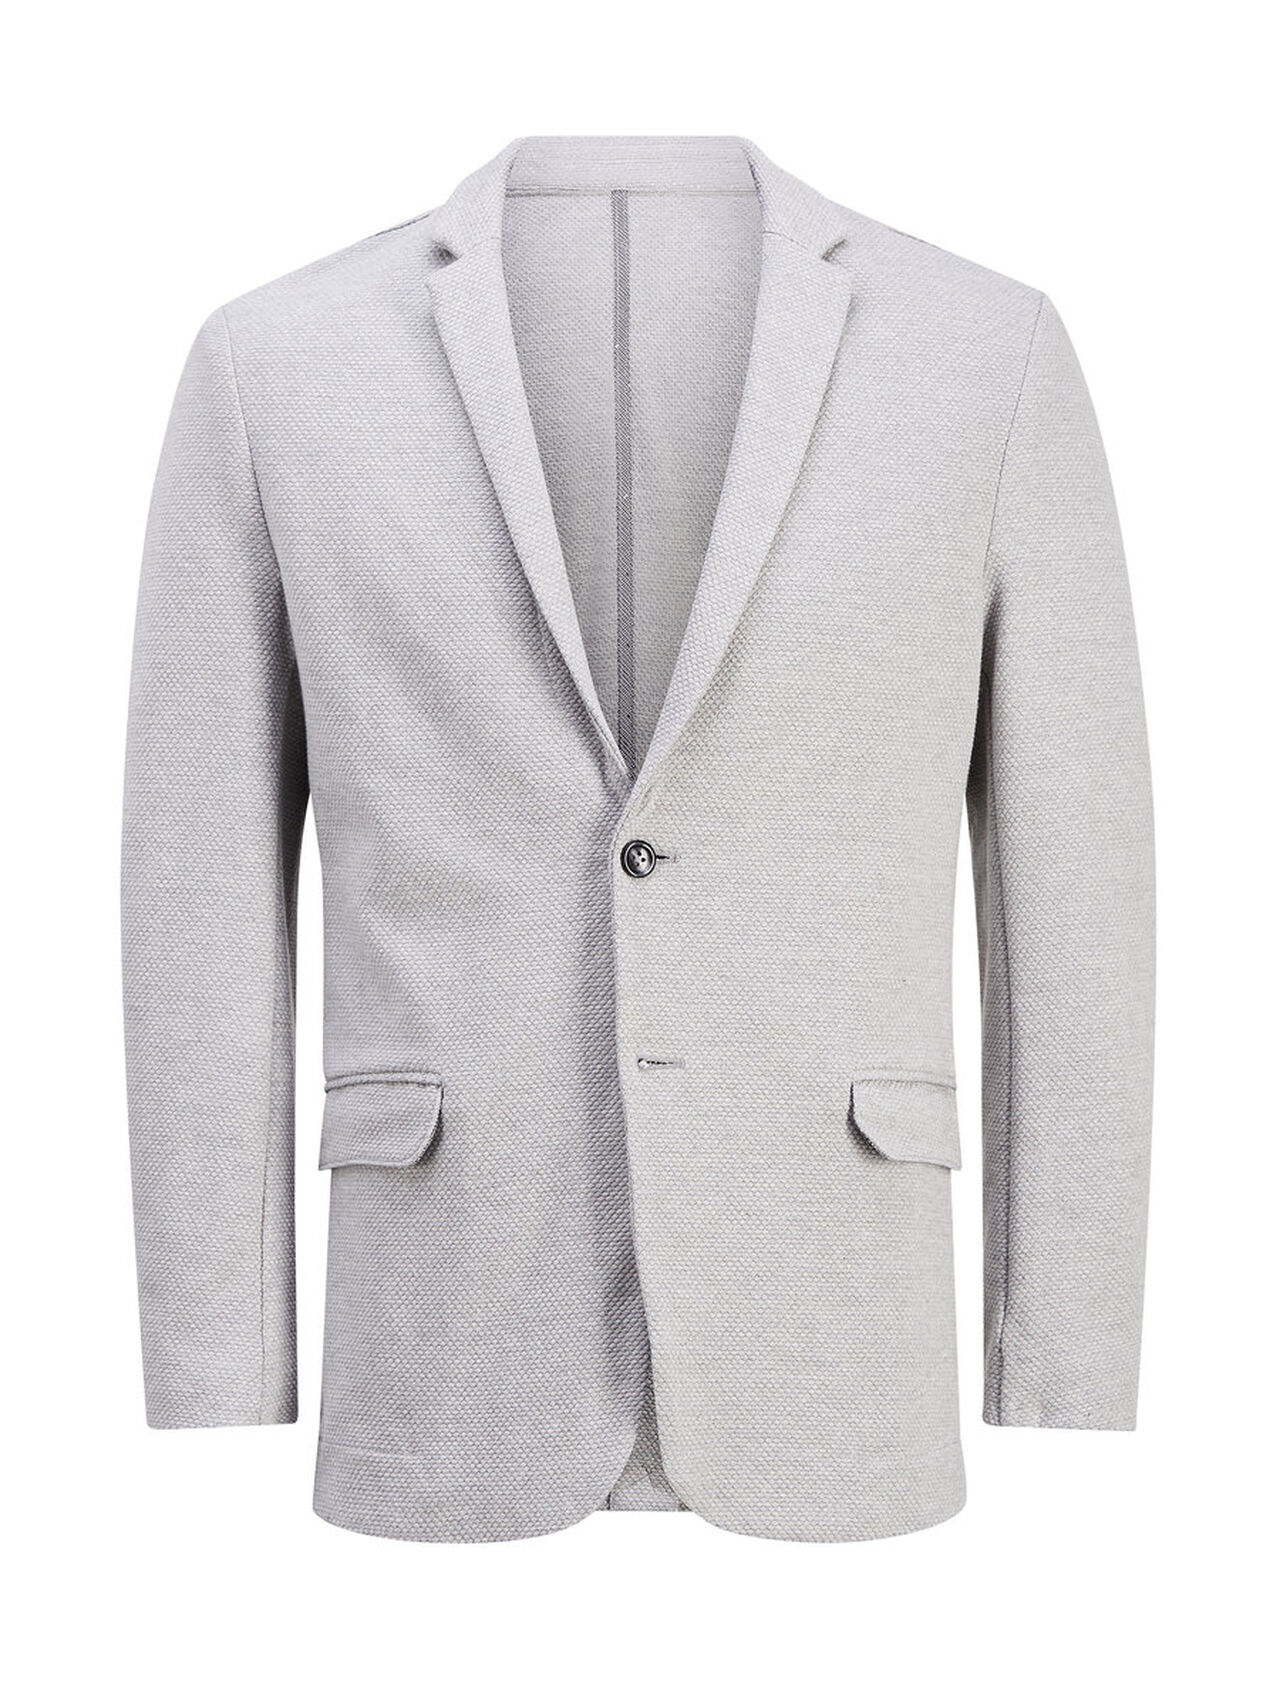 JACK & JONES On-trend Sweatblazer Heren Grijs thumbnail